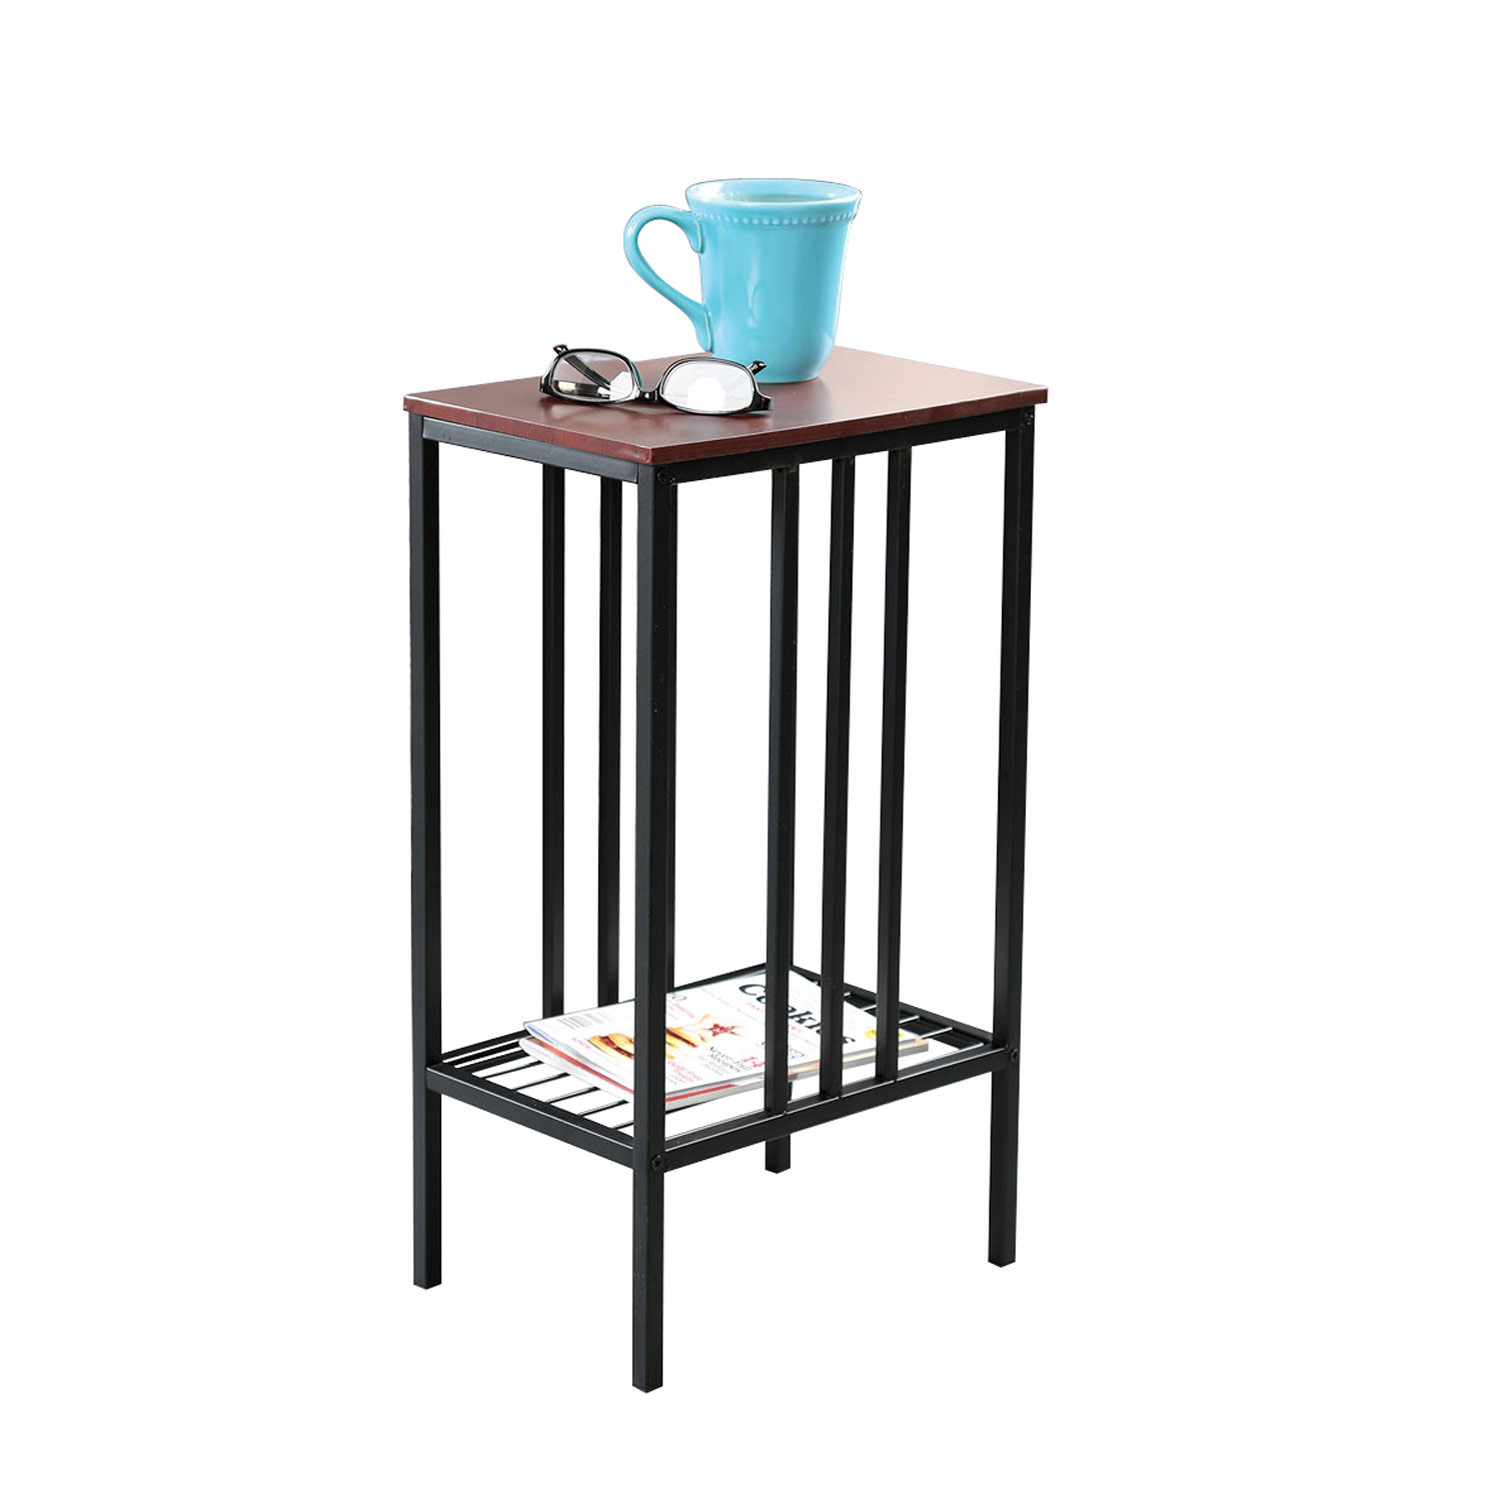 chair side sofa accent table black iron walnut top small space rev with tray end round outdoor patio farmhouse bench best computer desk sun umbrella stand turquoise bedside lamps